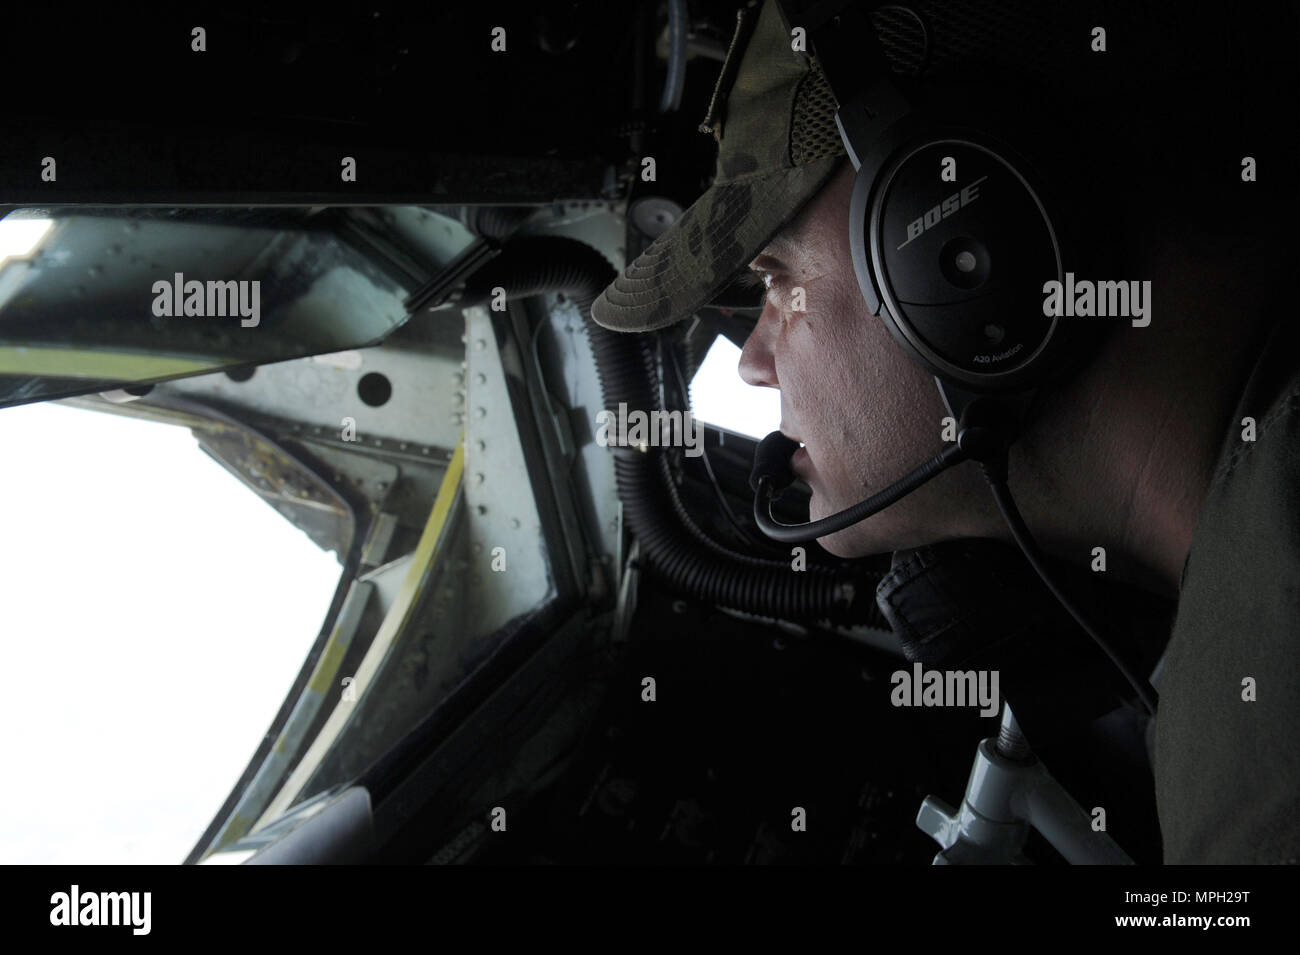 U.S. Air Force Master Sgt. Joshua Welch, 434th Air Refueling Wing boom operator, guides a U.S. Air Force KC-135 Stratotanker boom in place in order to refuel a U.S. Air Force  F-22 Raptor above Royal Australian Air Force Base Tindal, Australia, March 2, 2017. Twelve F-22 Raptors and approximately 200 U.S. Air Force Airmen participated in the first Enhanced Air Cooperation, an initiative under the Force Posture Agreement between the U.S. and Australia. (U.S. Air Force photo by Staff Sgt. Alexander Martinez) - Stock Image